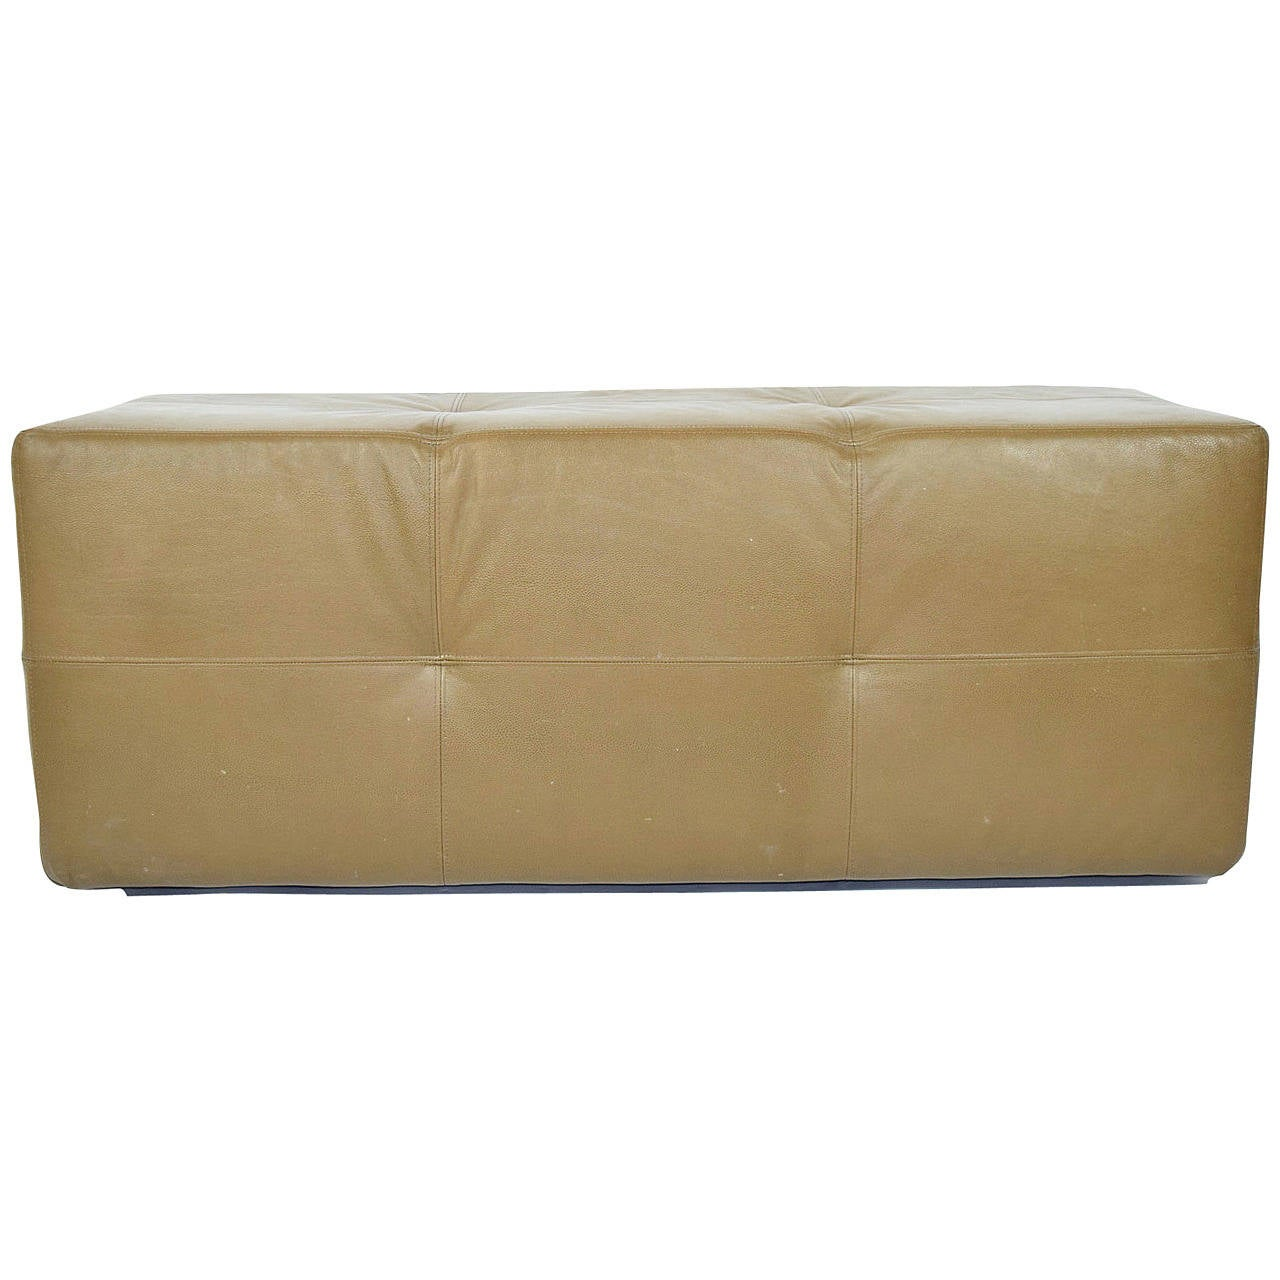 """Custom Bench in Great Plains """"Stingray"""" Leather with Paris Seam Stitching"""